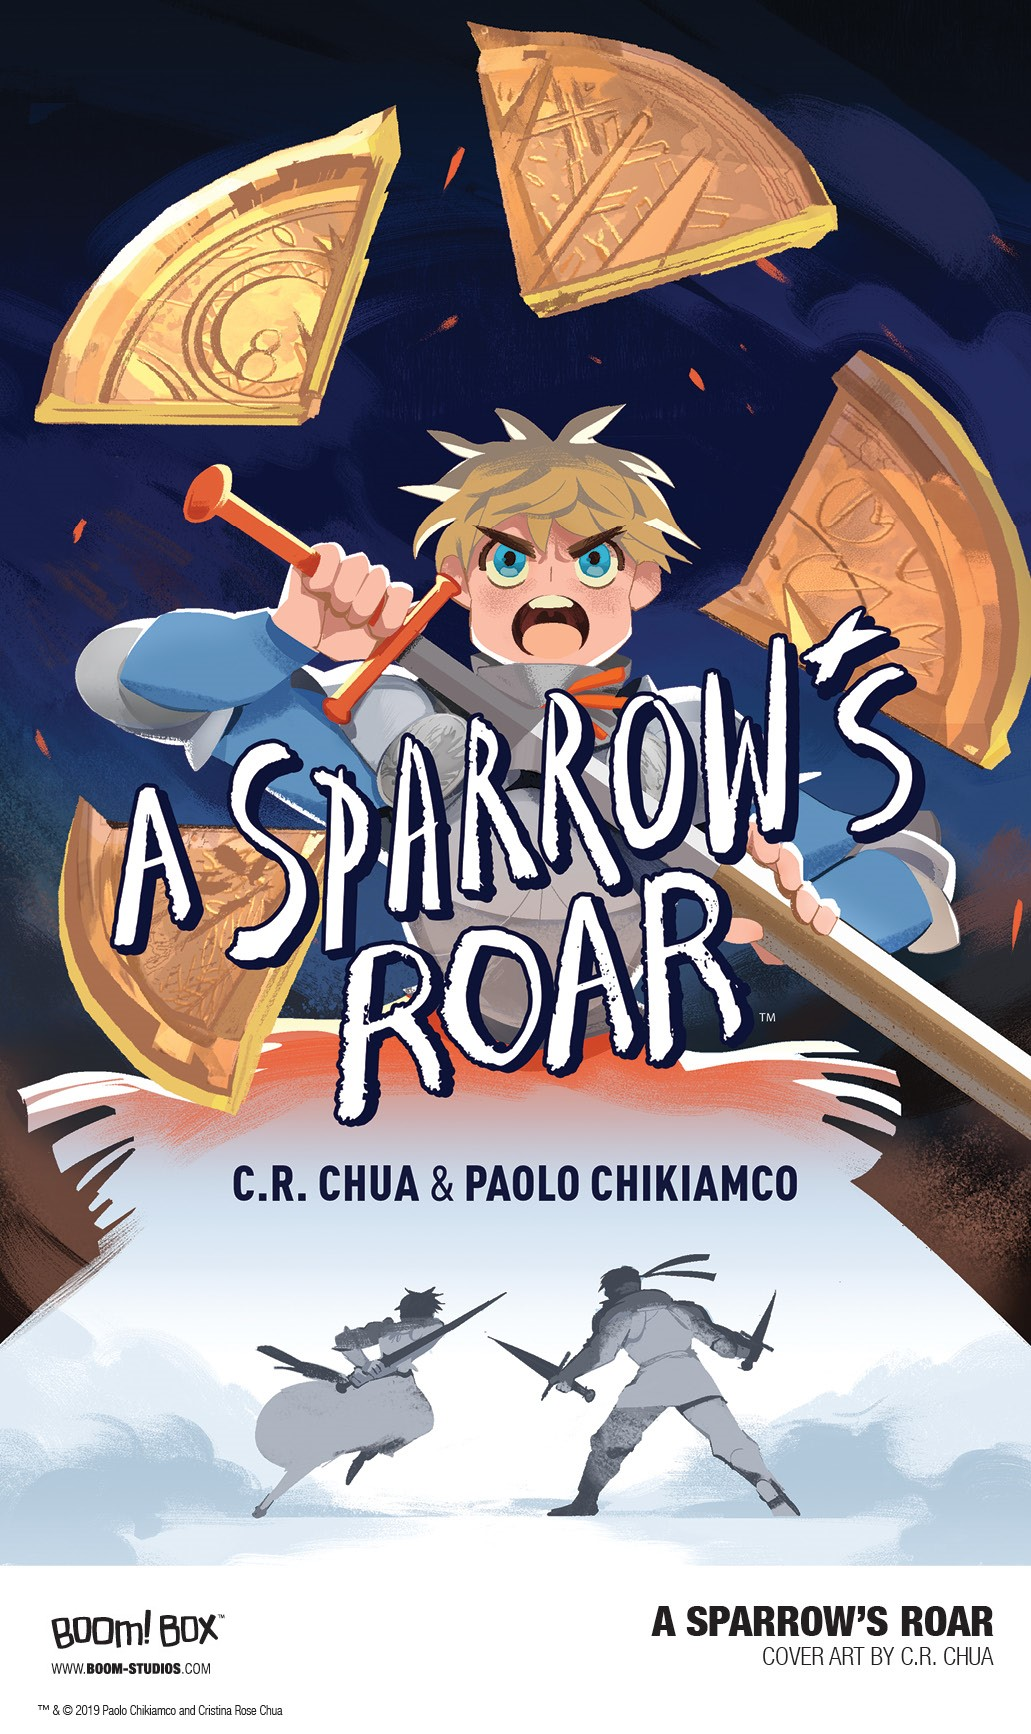 ASparrowsRoar_OGN_Cover_PROMO.jpg